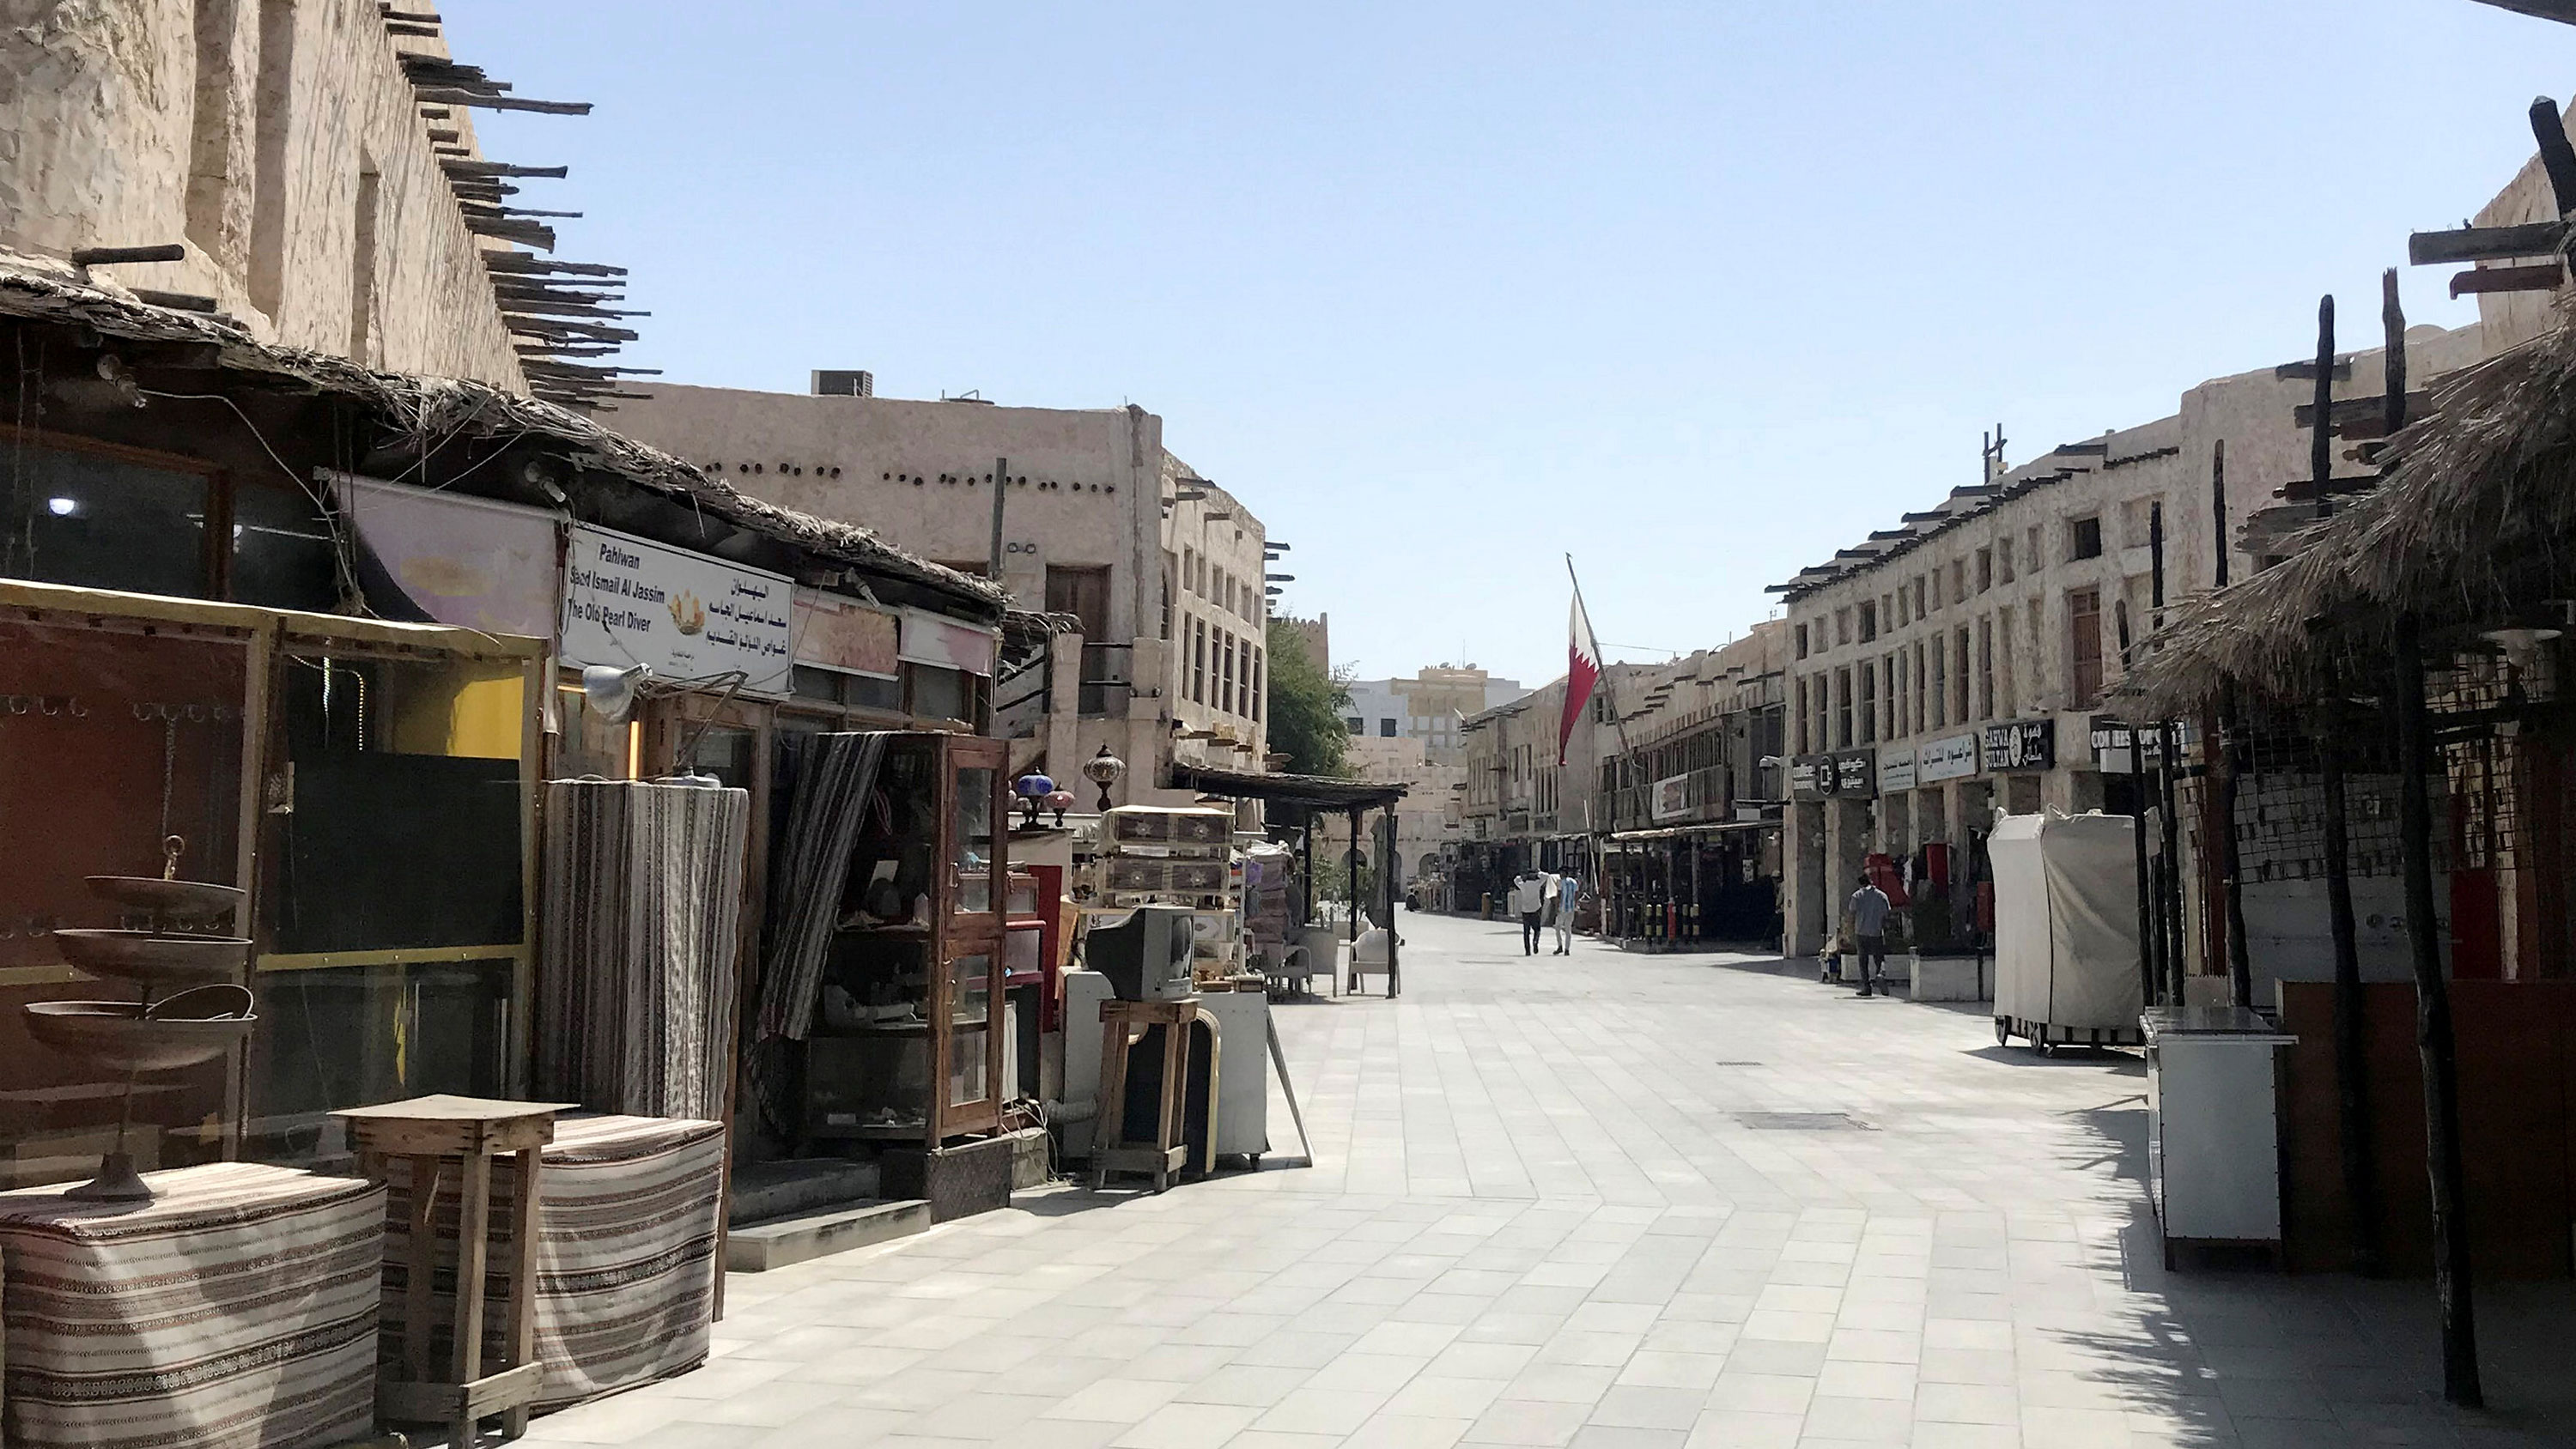 The image shows the empty, mostly abandoned stalls of a Middle Eastern marketplace